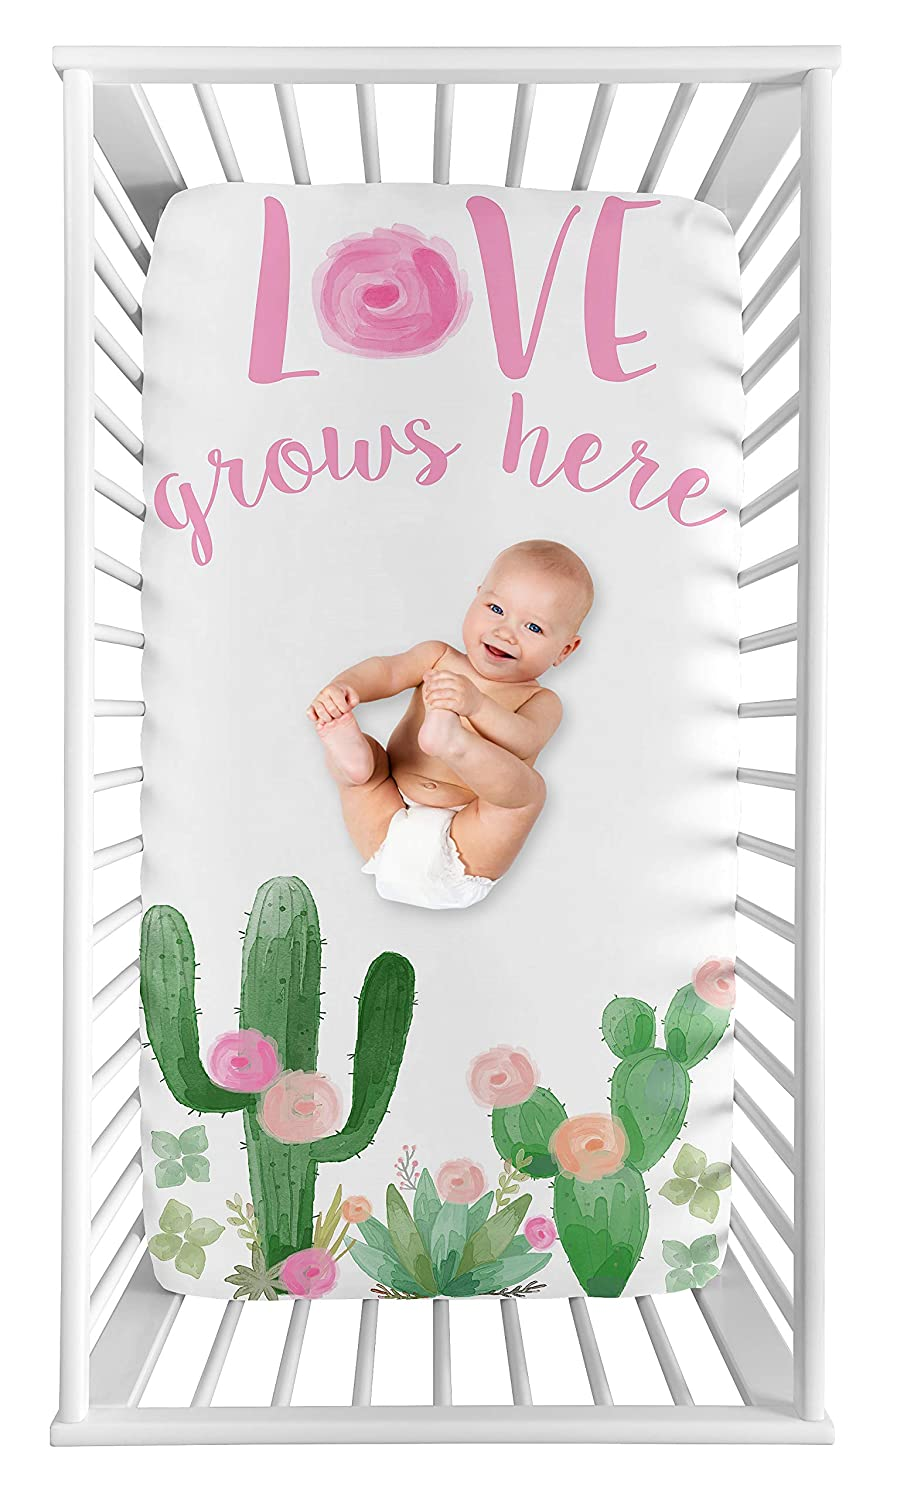 Sweet Jojo Designs Cactus Floral Girl Fitted Crib Sheet Baby or Toddler Bed Nursery Photo Op - Pink and Green Boho Watercolor Love Grows Here